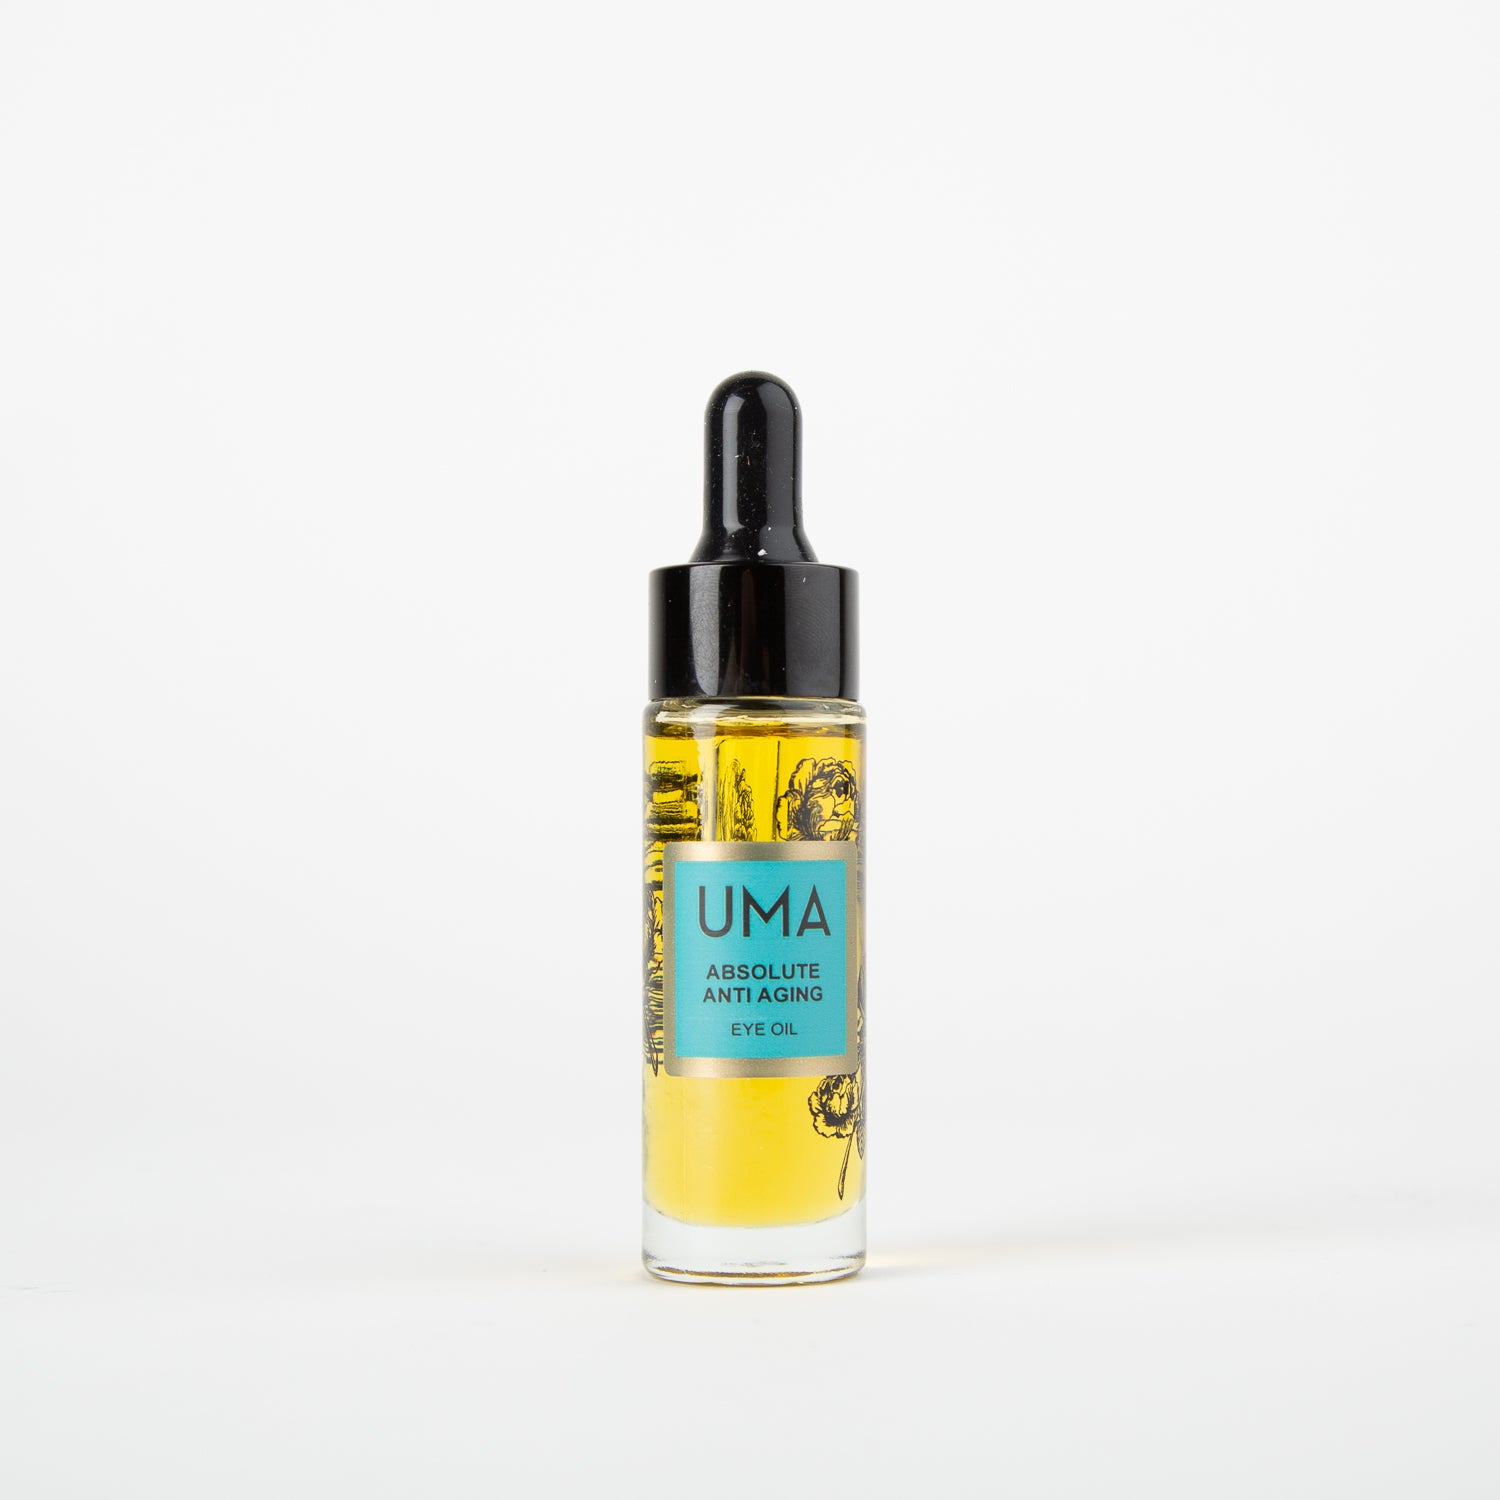 absolute anti aging eye oil by UMA at Secret Location Concept Store